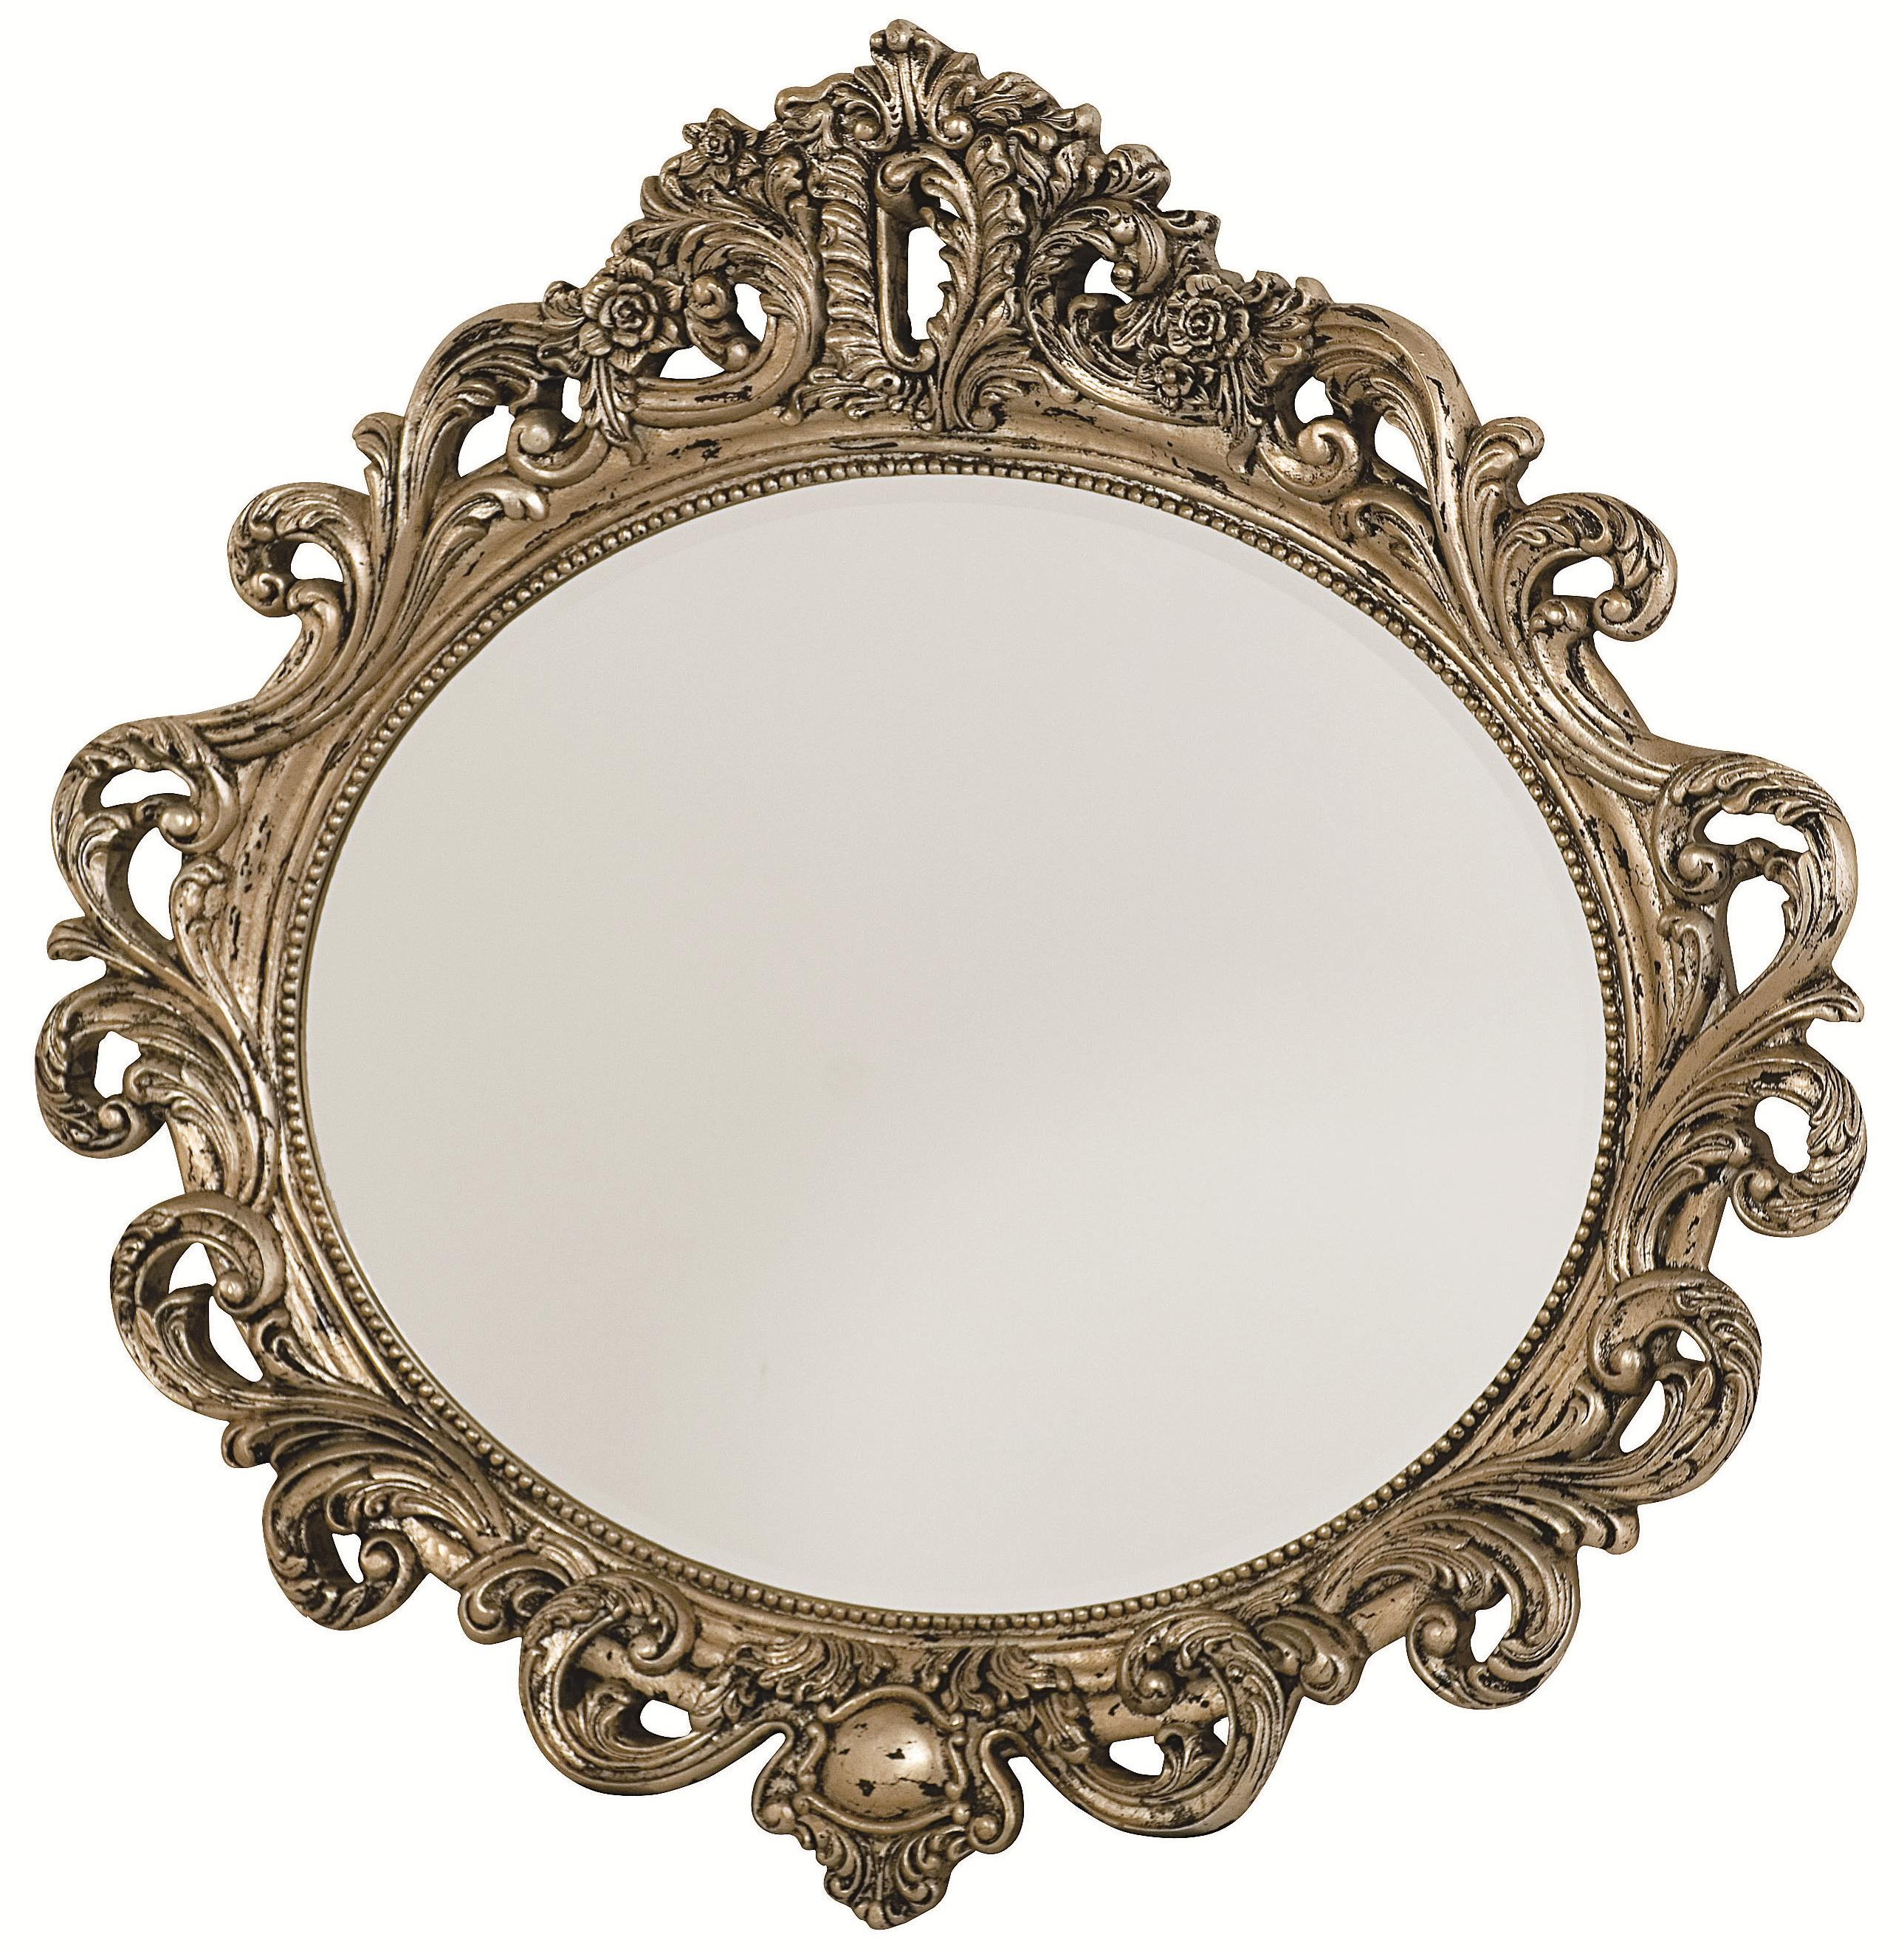 American Drew Jessica McClintock Home - The Boutique Collection Oval Decorative Mirror - Item Number: 217-040